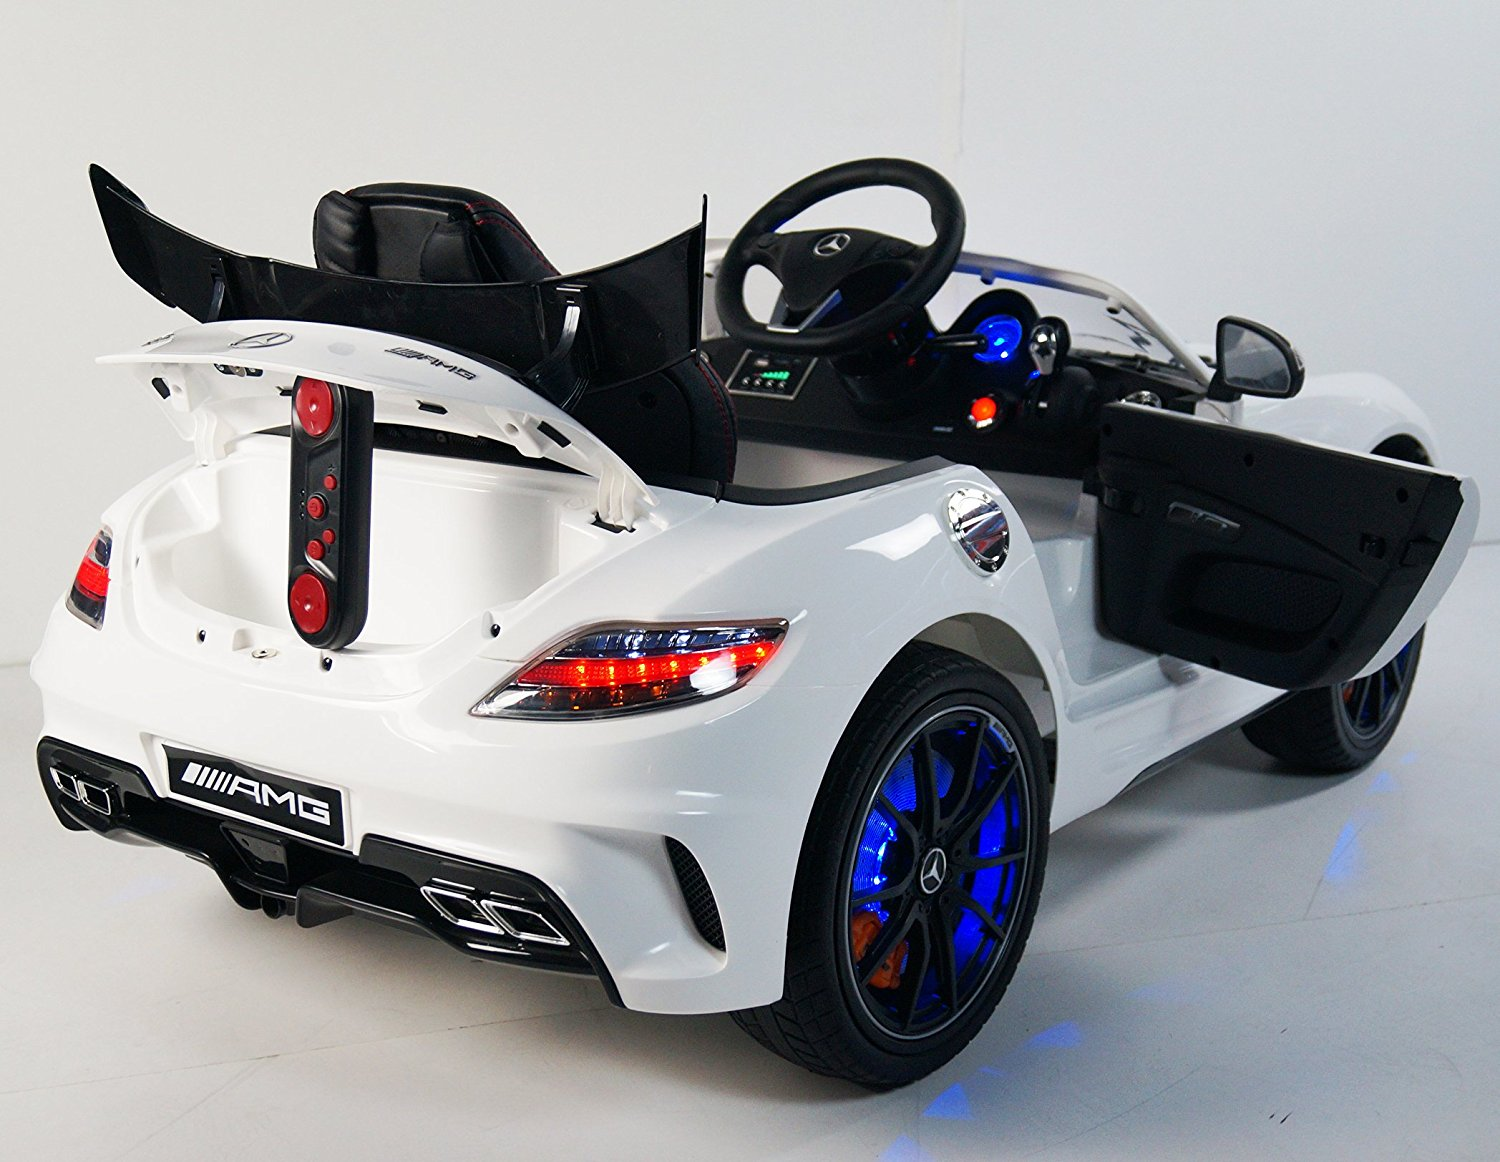 Electric cAr MERCEDES style. cars for childrens BOYS and GIRLS ride on car with remote control RC Battery Operated 12V. ride on toy car Ride on car Сar for kids ride 2 to 7 years. pedal.seat.